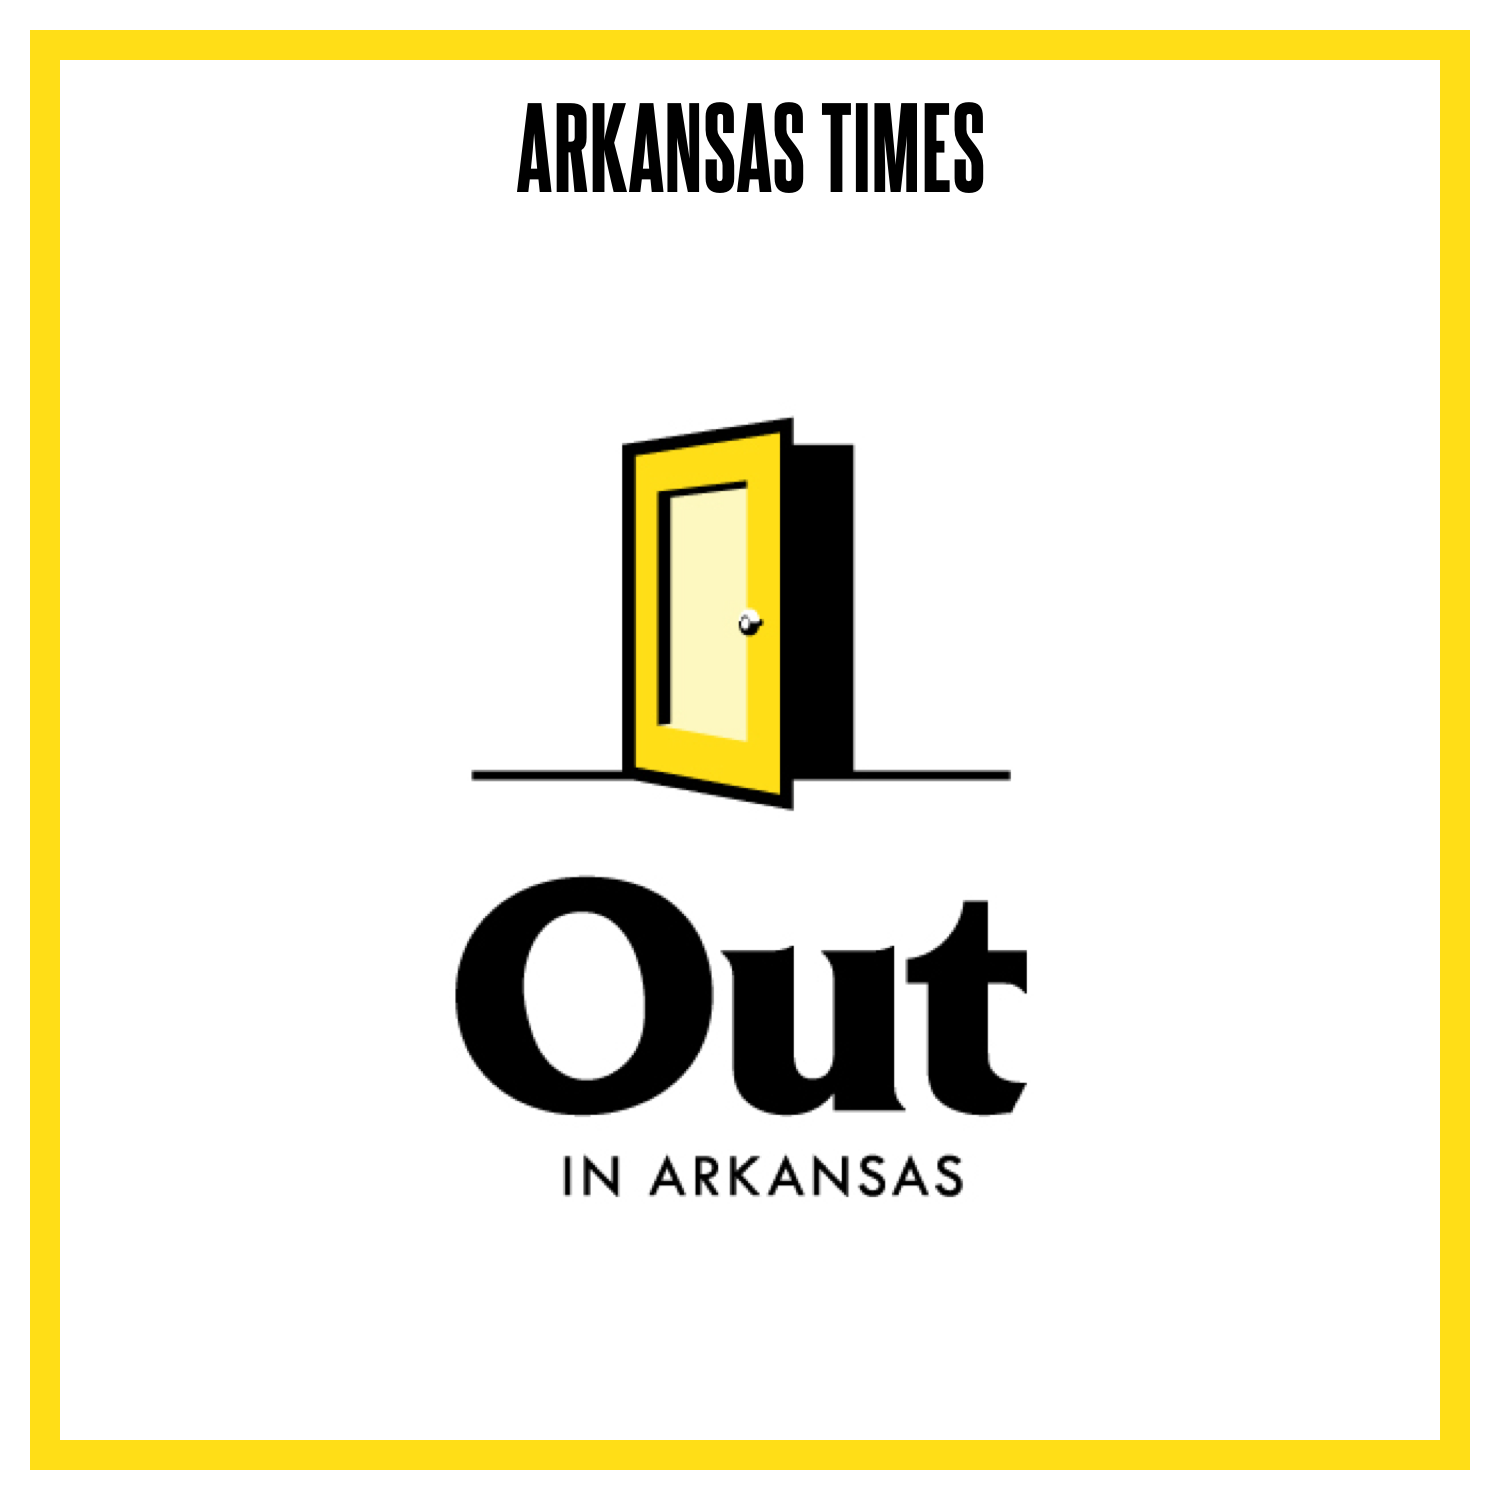 Arkansas Times presents the Out in Arkansas podcast